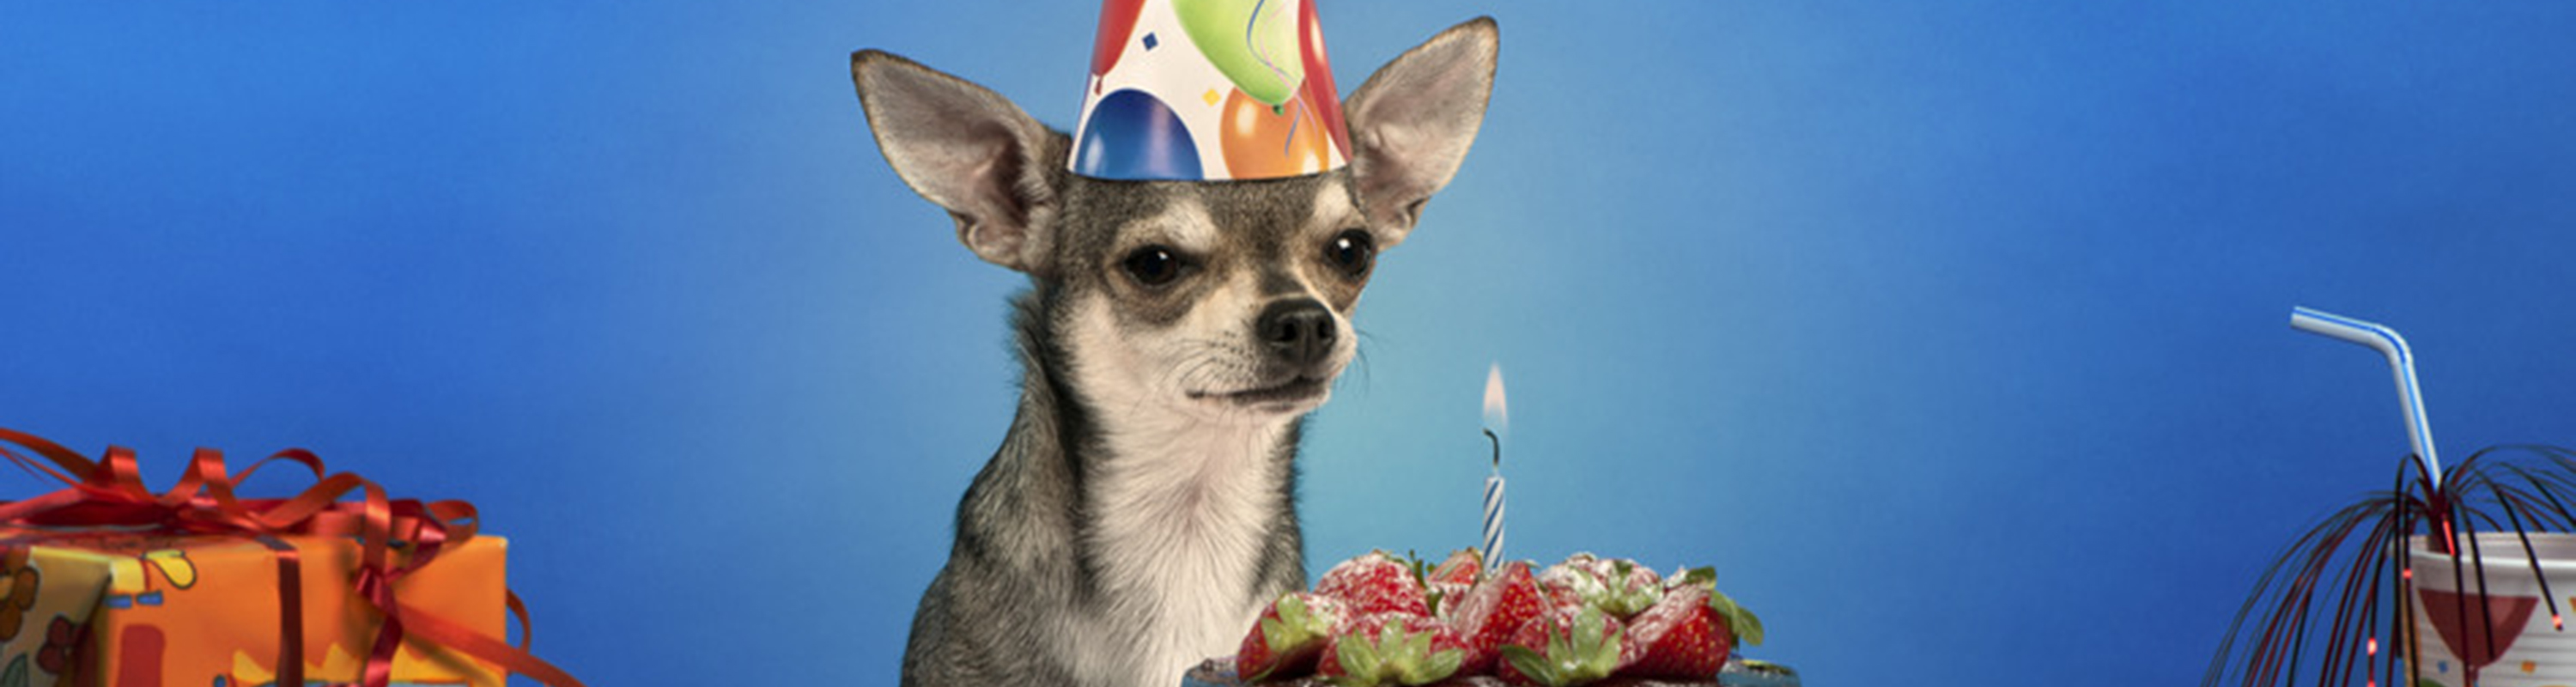 Chihuahua at birthday